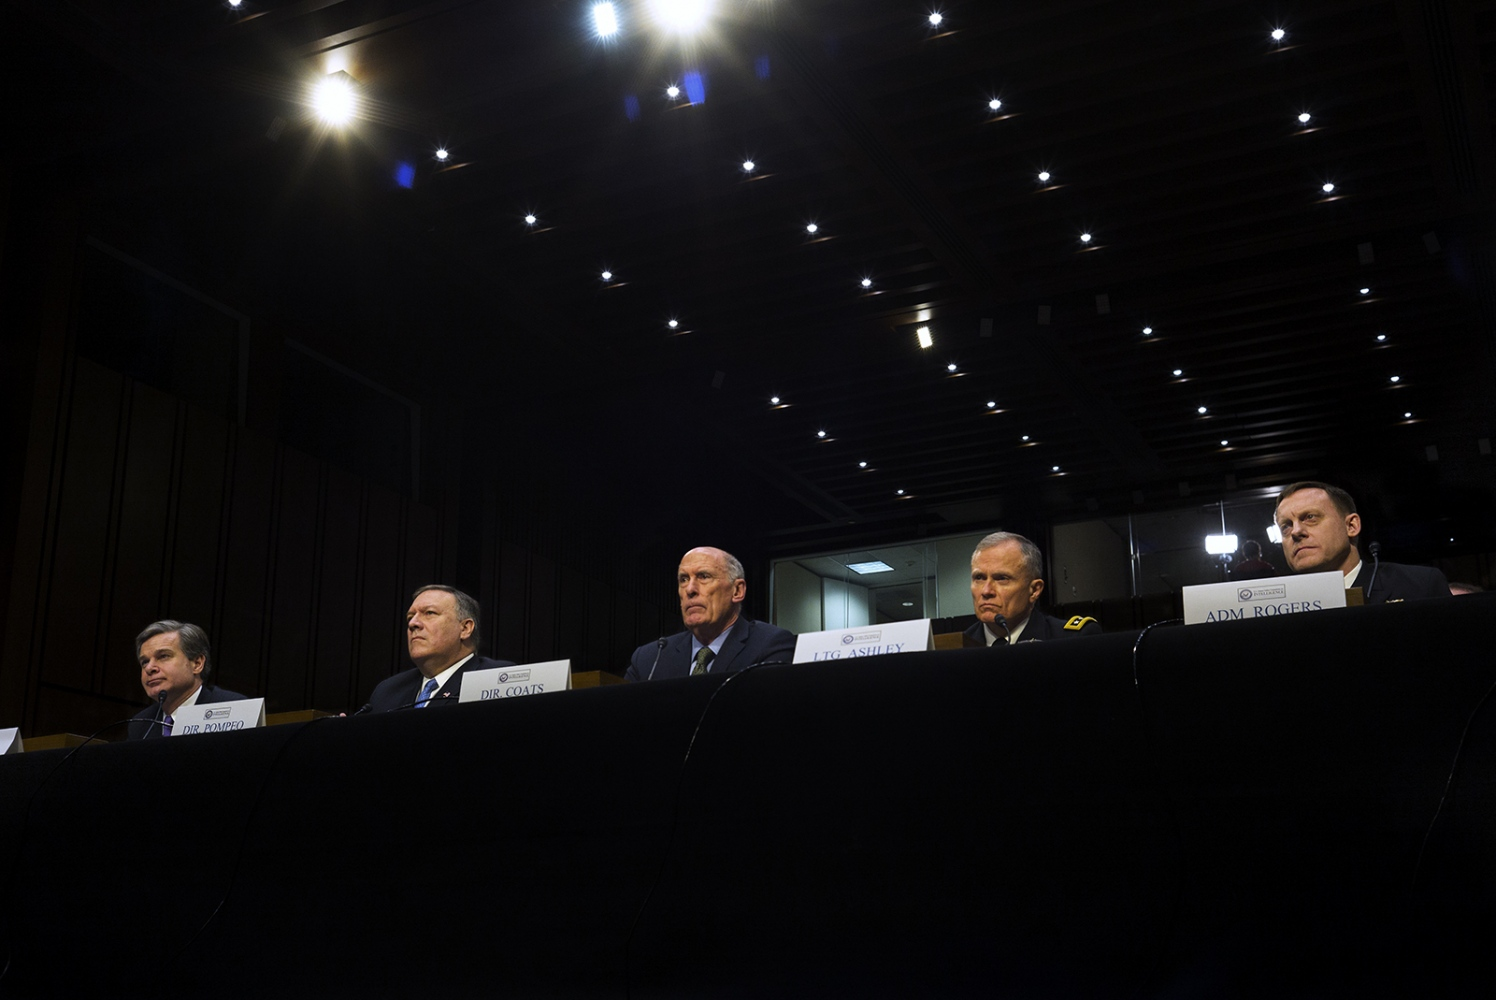 (From left) FBI Director Christopher Wray, CIA Director Mike Pompeo, Director of National Intelligence Dan Coats, Defense Intelligence Agency Director Lt. Gen. Robert Ashley, and NSA Director Adm. Michael Rogers testify before the Senate intelligence committee.